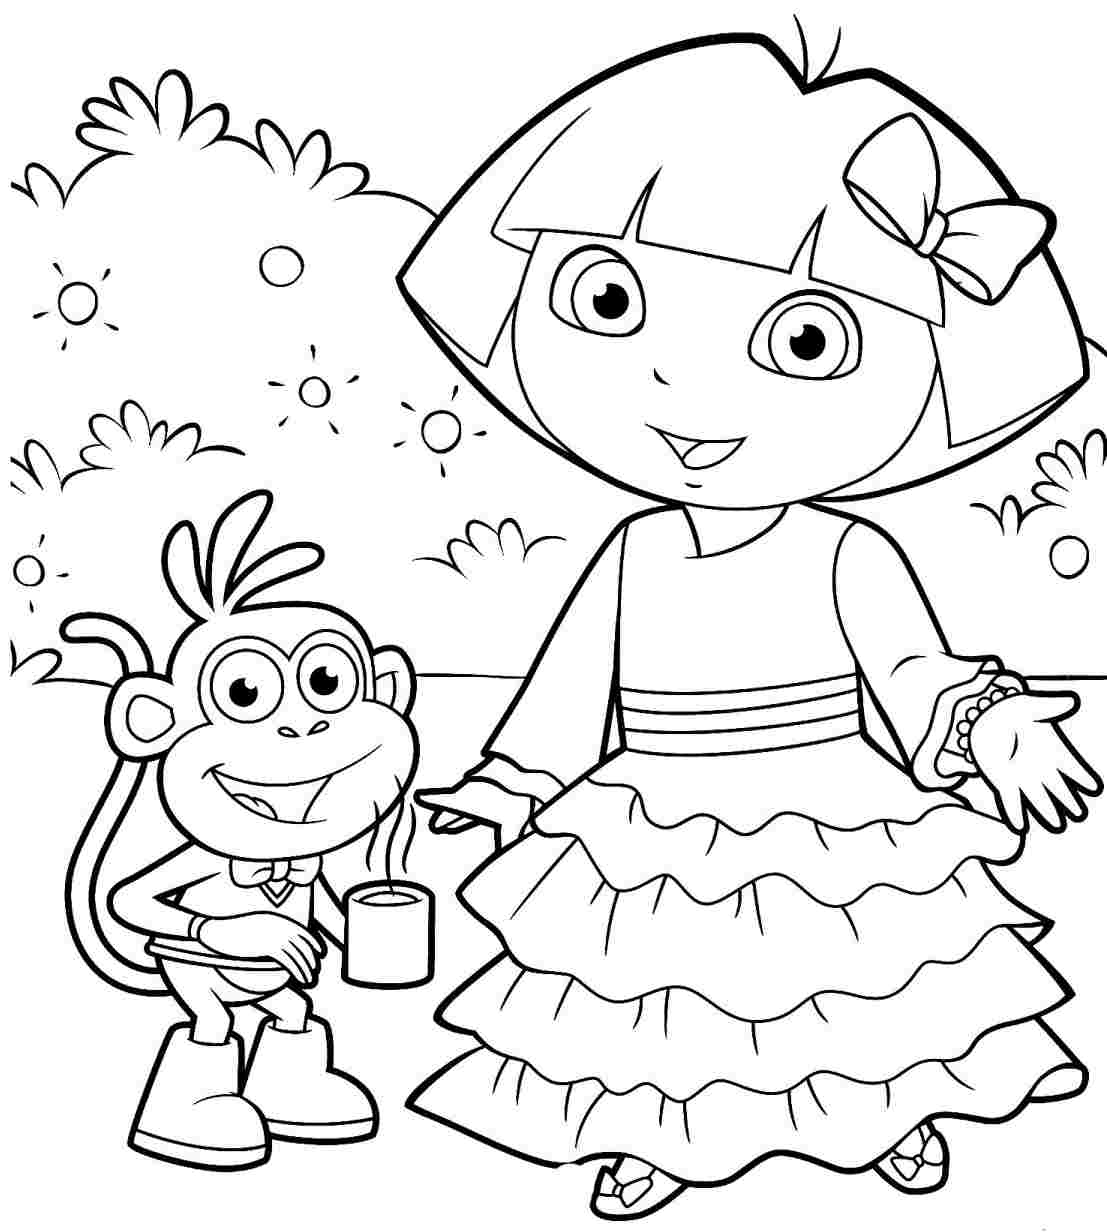 dora coloring pages free printable free printable dora coloring pages for kids cool2bkids printable dora pages coloring free